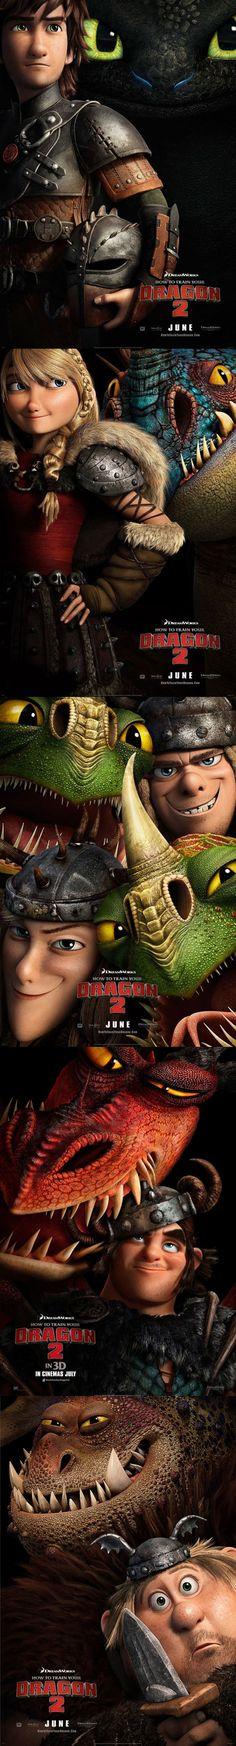 This Movie Can't Come Soon Enough - How to Train Your Dragon 2 Like... REALLY I NEED IT!!!!